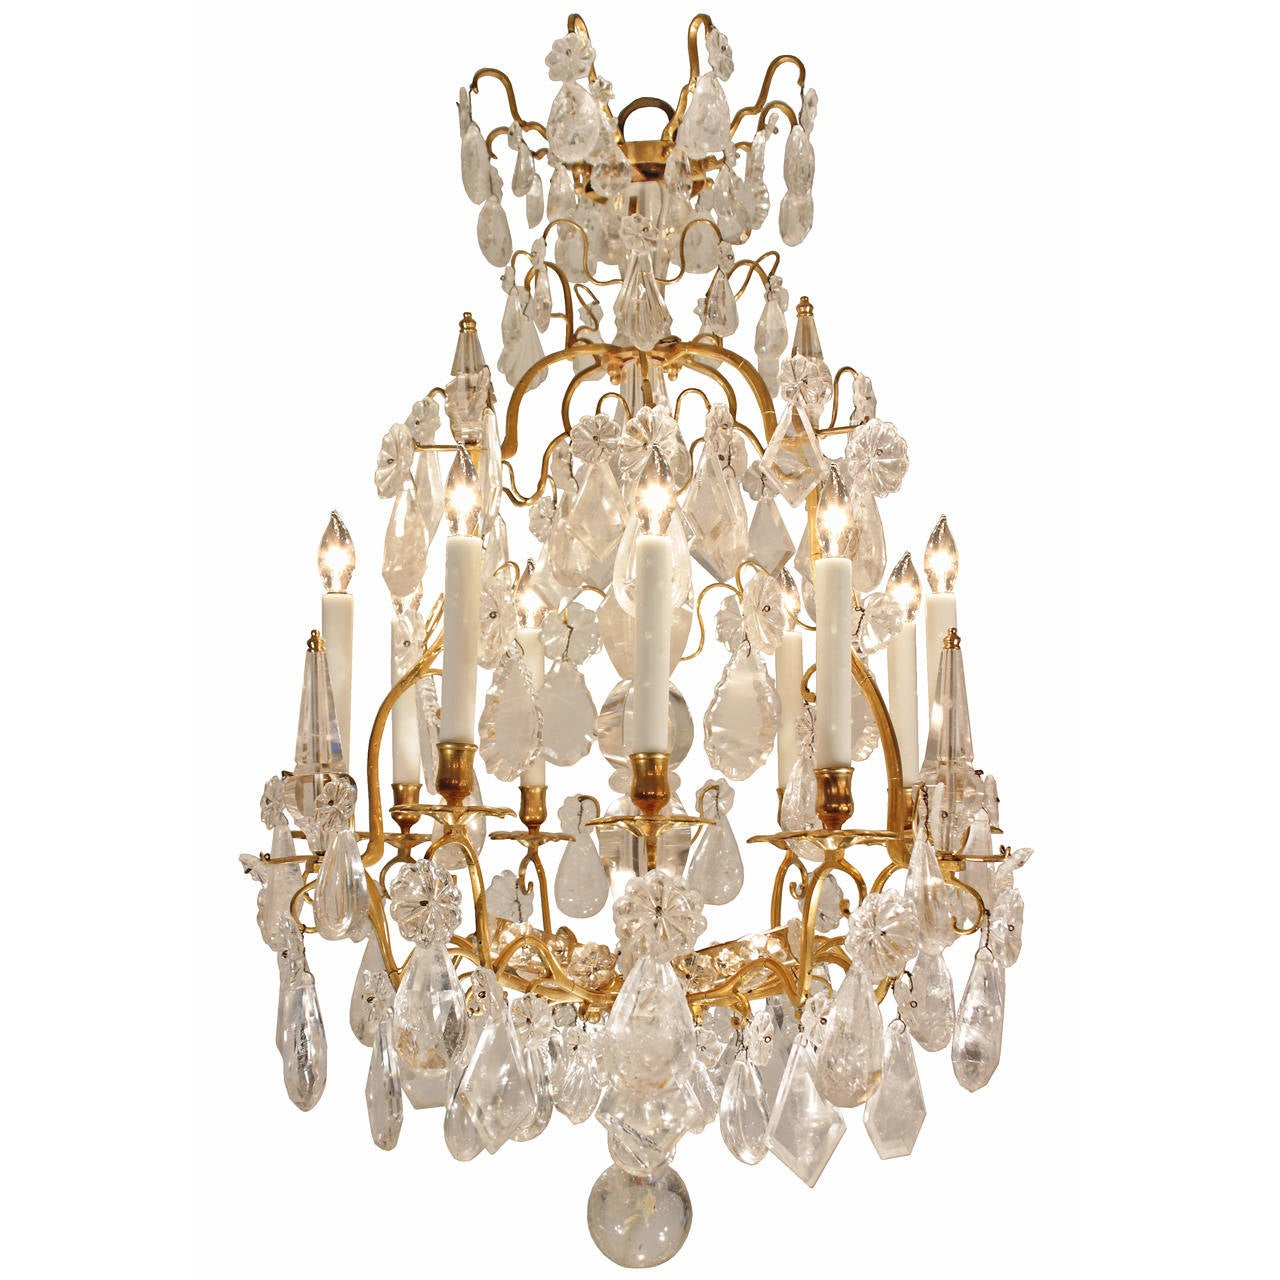 French mid 18th century louis xv period rock crystal and ormolu french mid 18th century louis xv period rock crystal and ormolu chandelier 1 arubaitofo Image collections